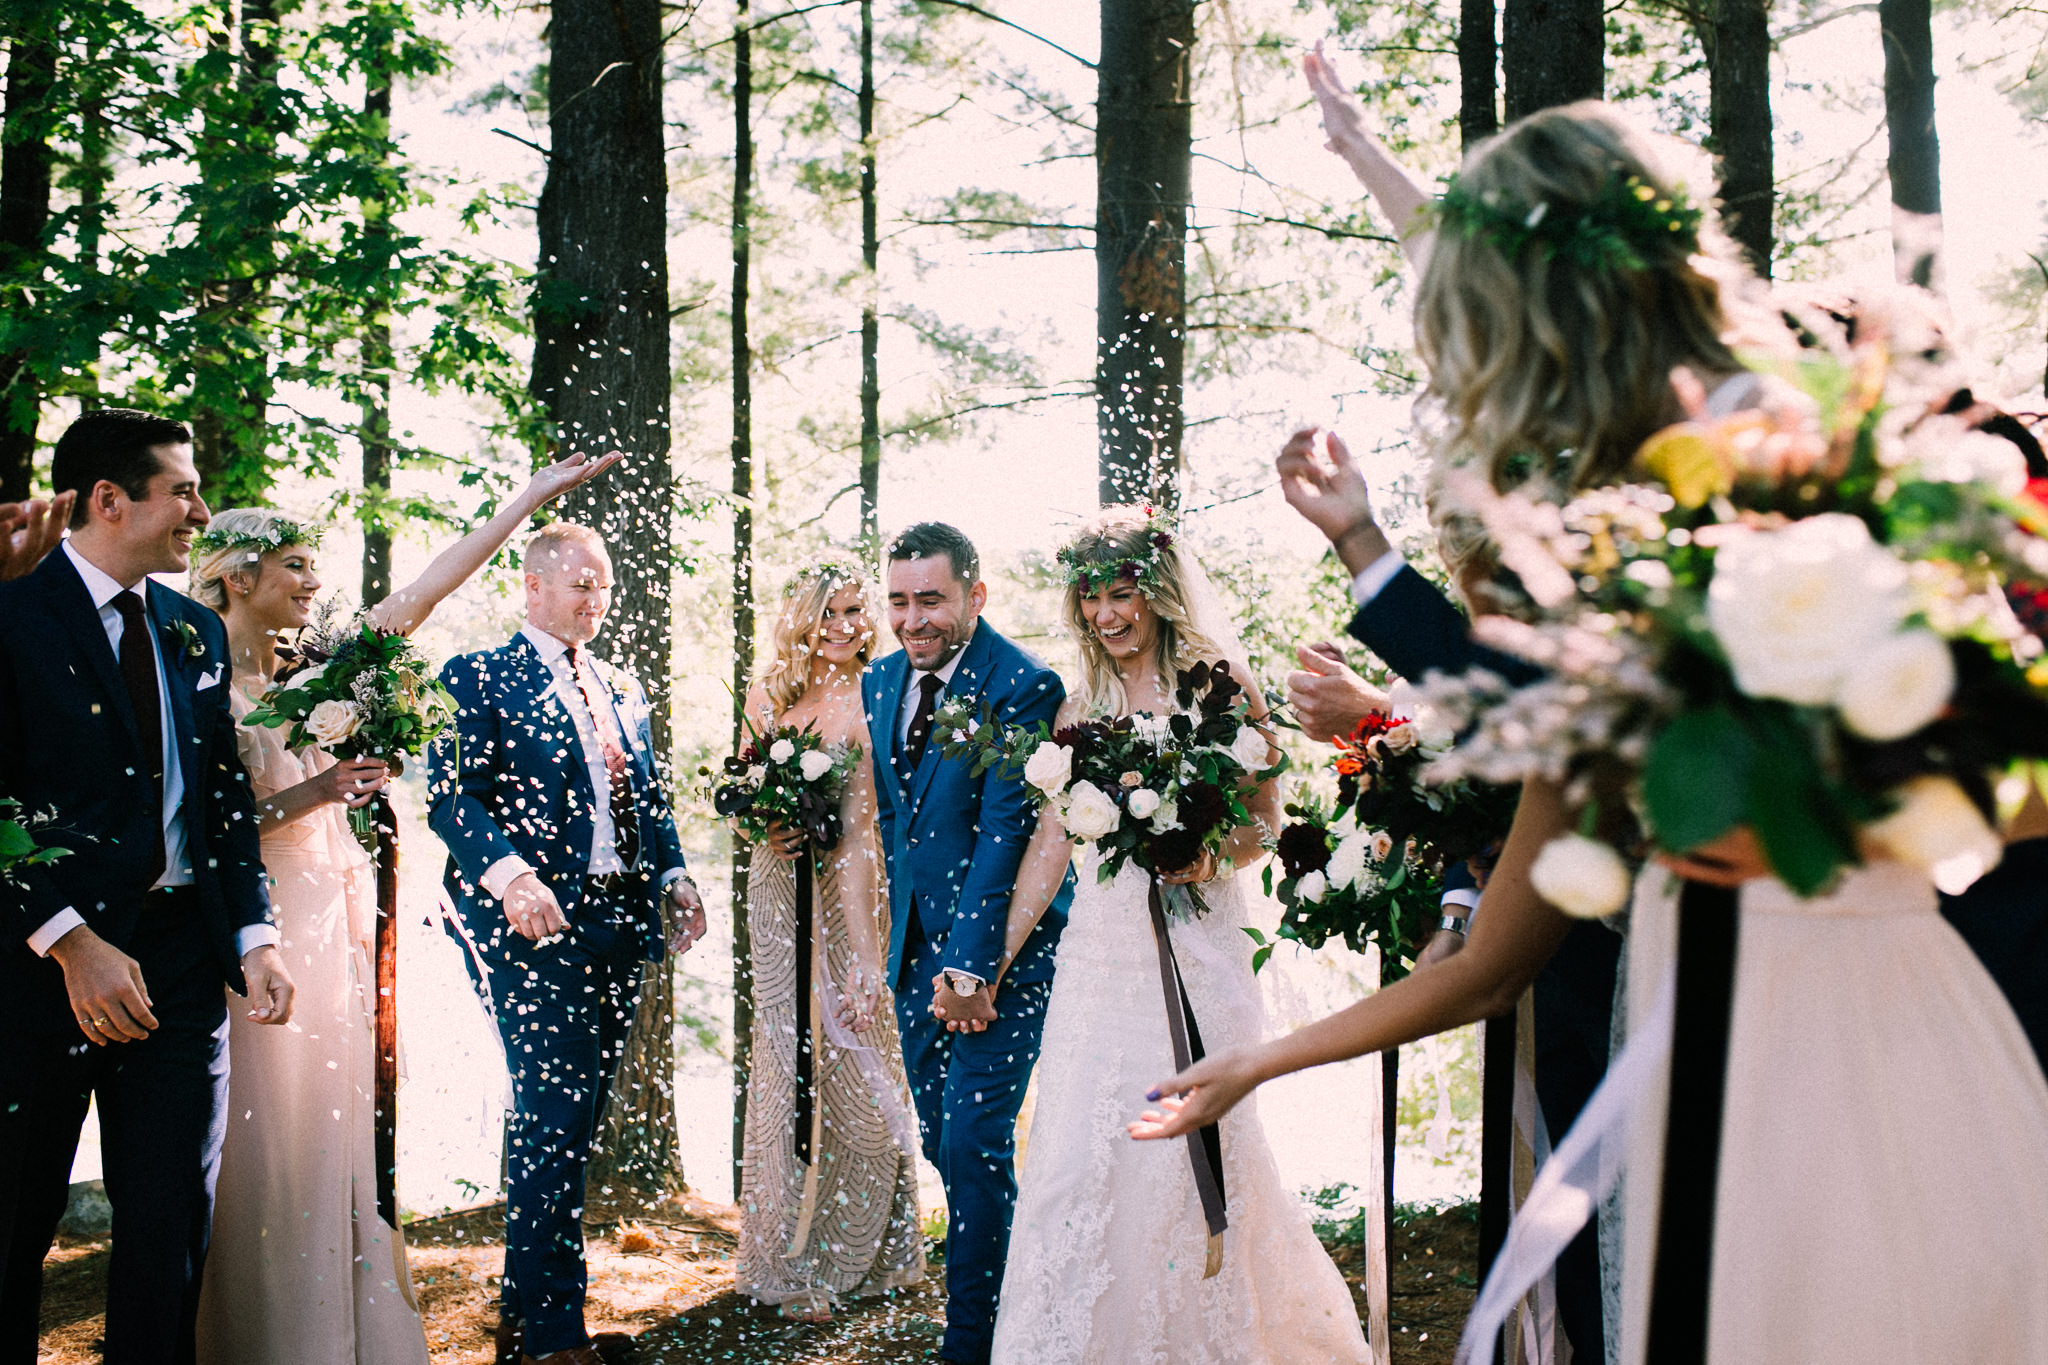 Muskoka lakeside wedding at Port Cunnington Lodge by Max Wong Photo (38)